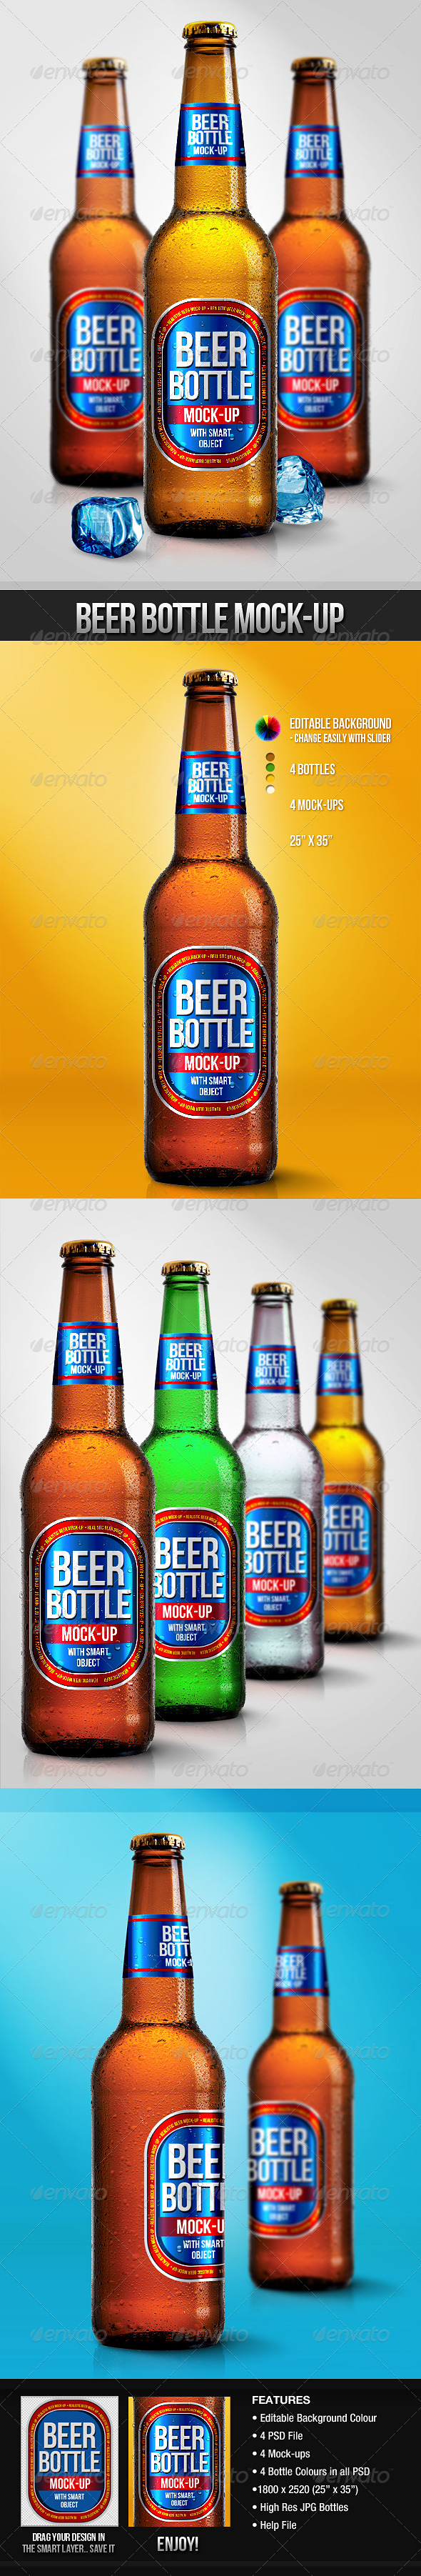 Beer Bottle Mock-Ups - Food and Drink Packaging